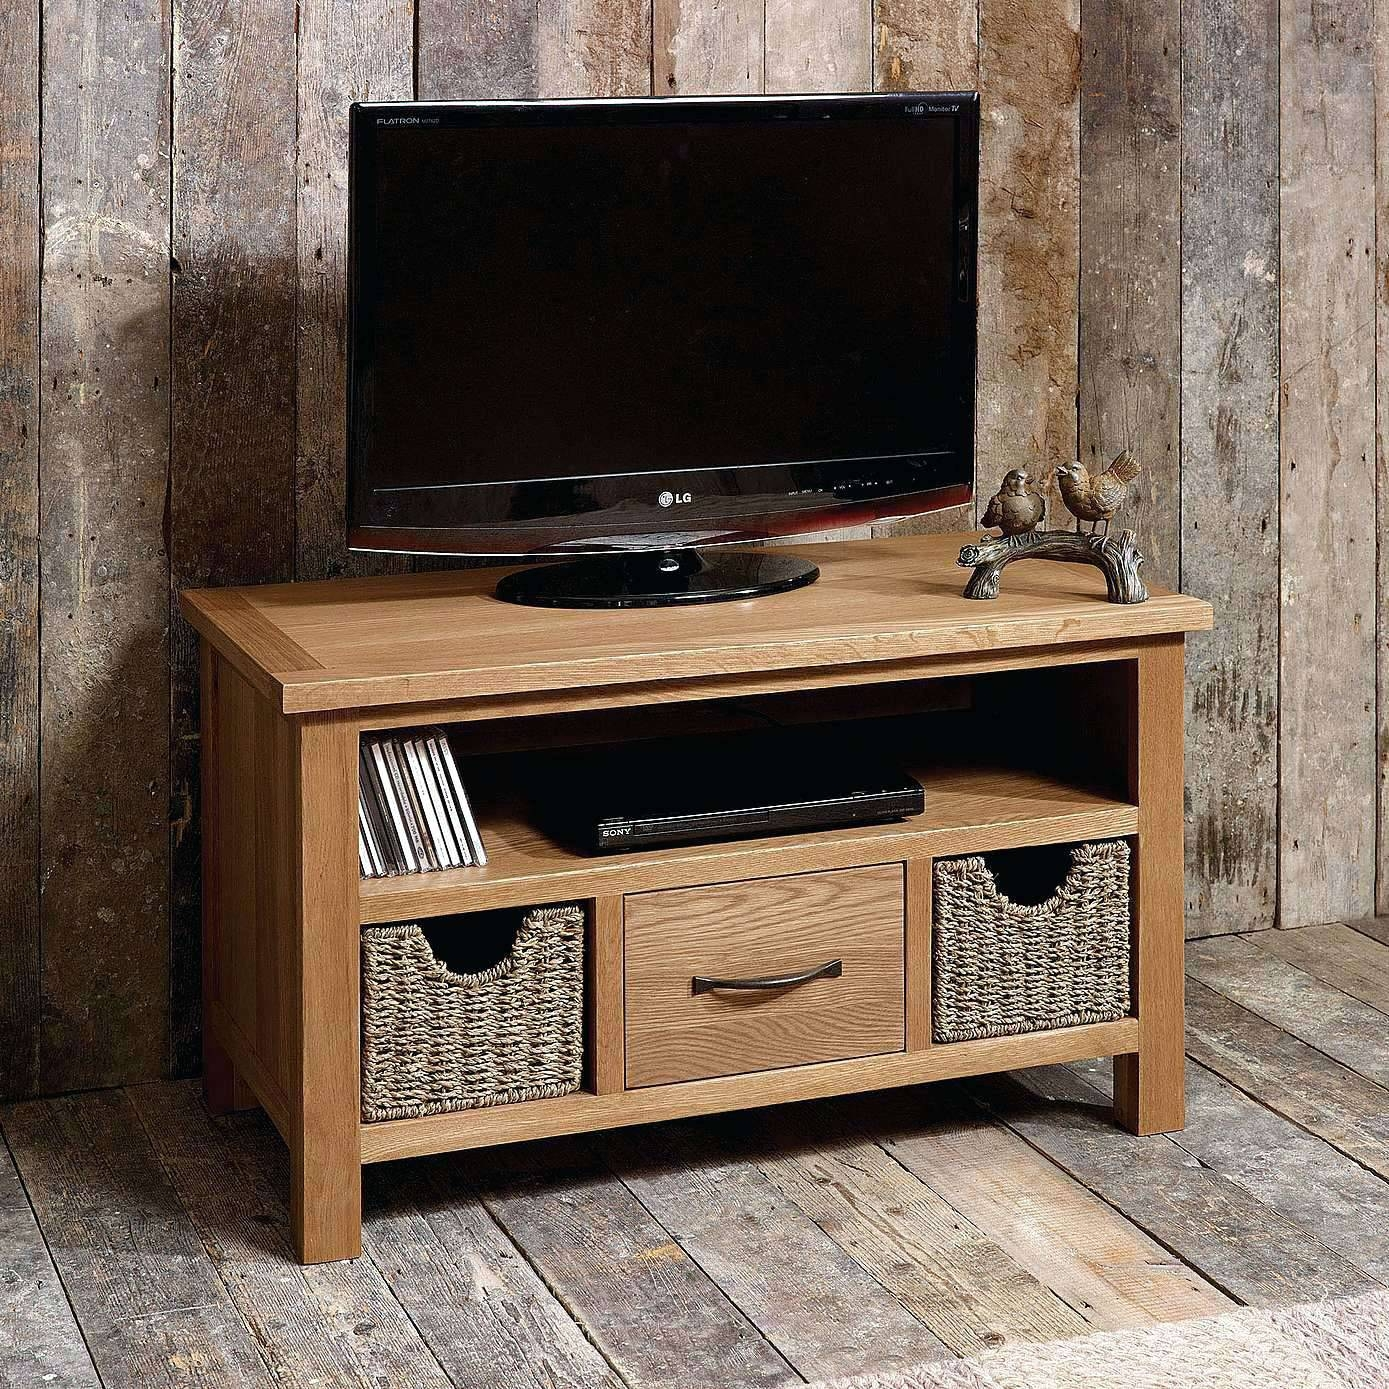 Tv Stand : 73 Furniture Ideas Cool Oak Veneer Tv Stand Oak Veneer pertaining to Tv Stands With Baskets (Image 9 of 15)